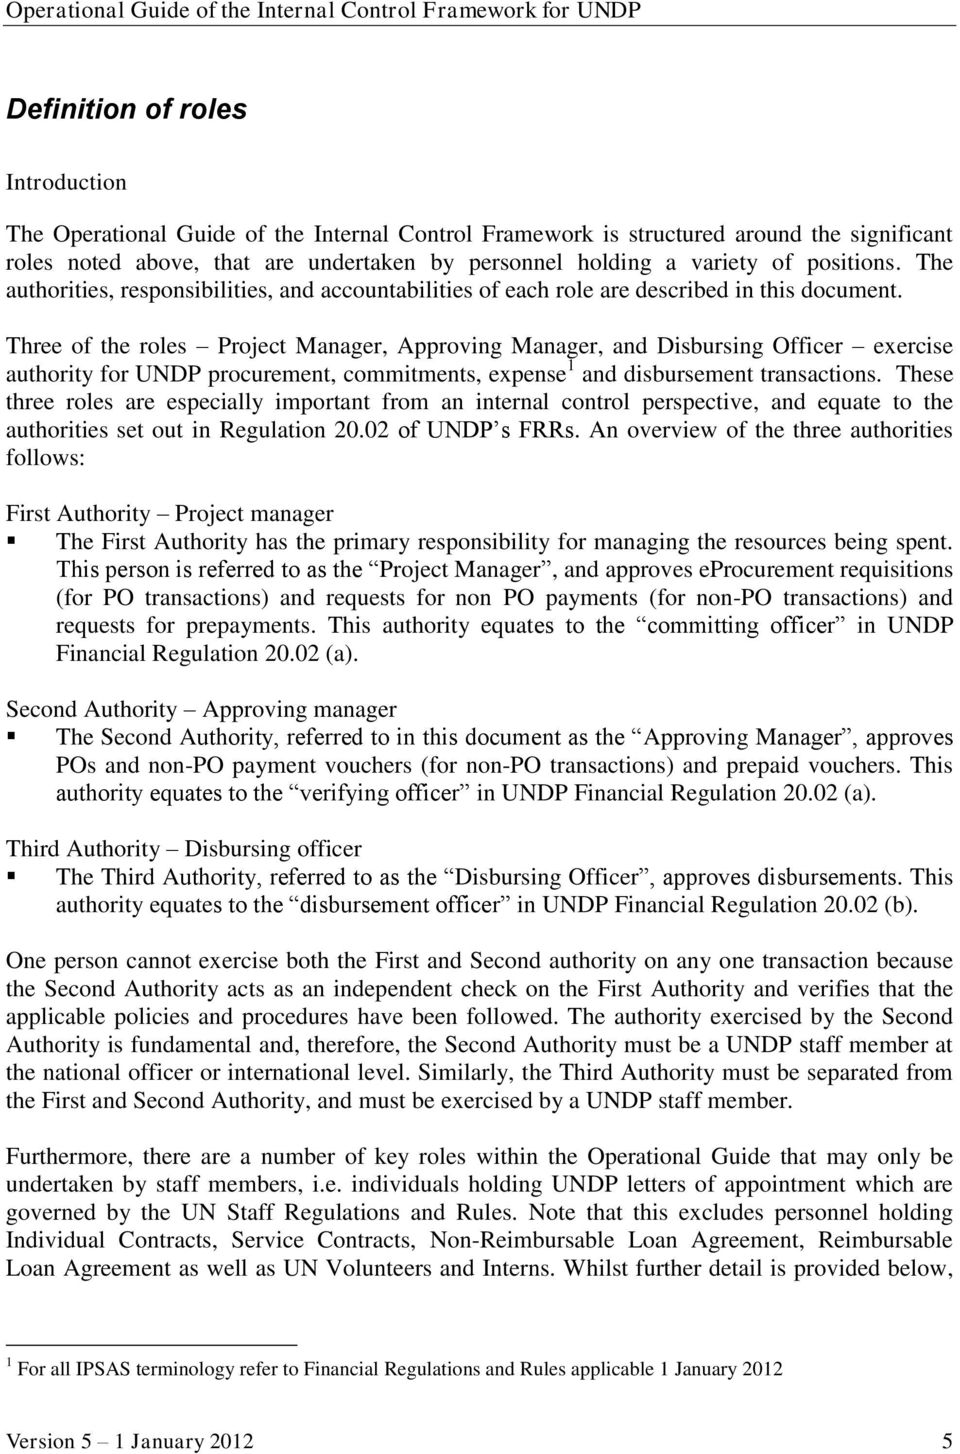 Operational guide of the internal control framework for undp pdf three of the roles project manager approving manager and disbursing officer exercise authority for spiritdancerdesigns Image collections